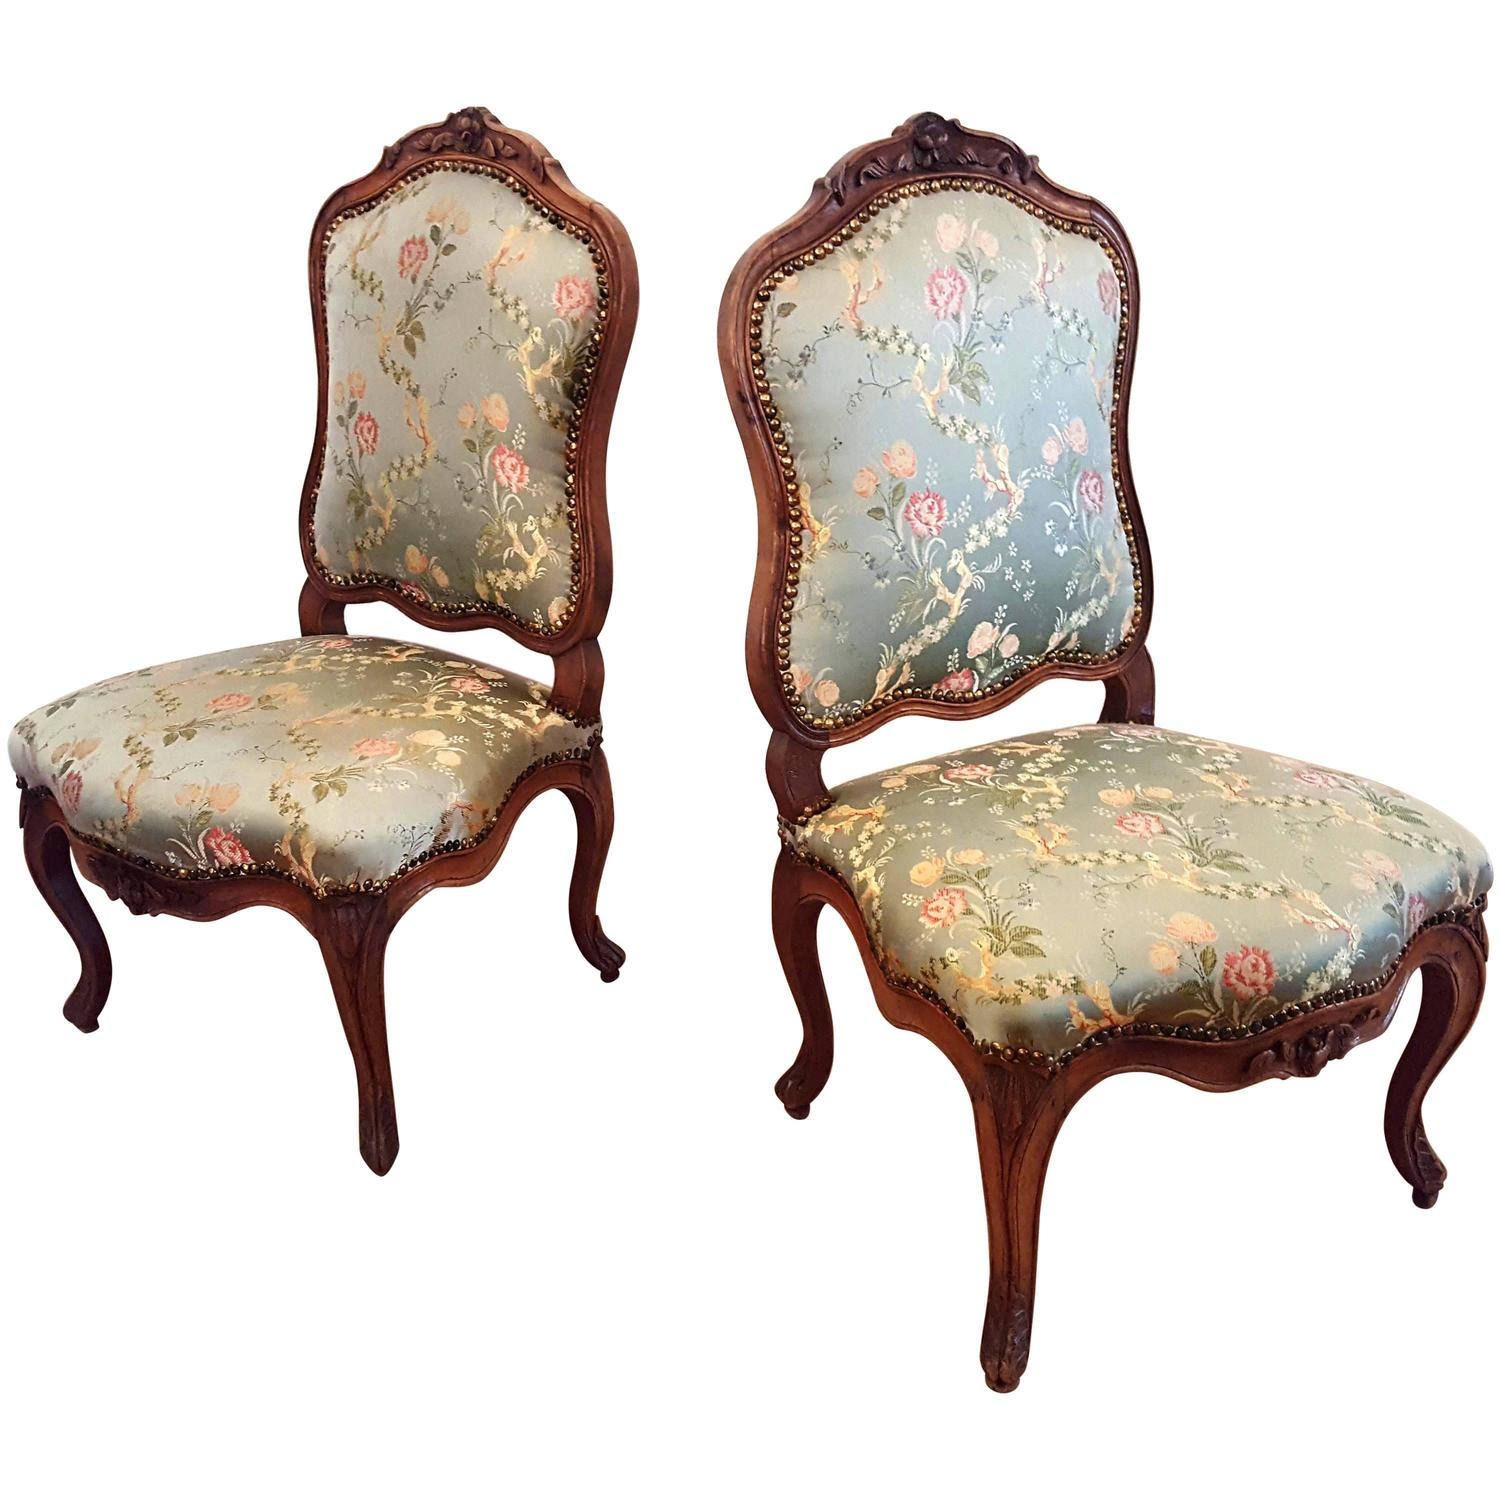 A Pair Of Period French Chairs With Missoni Fabric At 1stdibs: Fine Pair French Carved Walnut Rococo Chairs, Nogaret